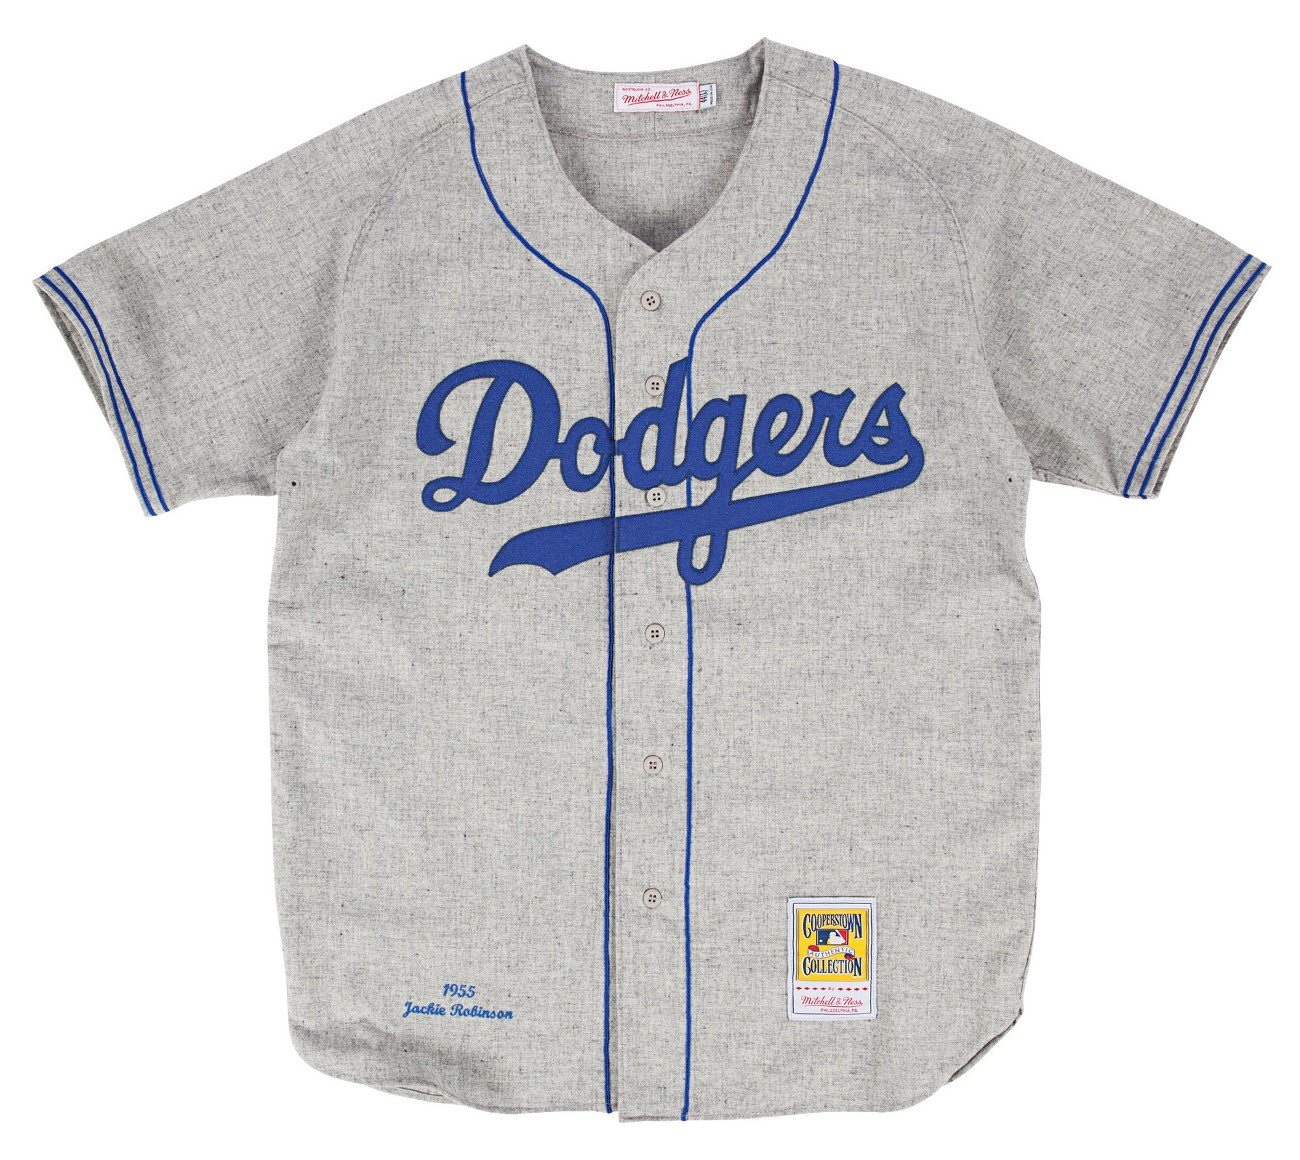 Jackie Robinson Brooklyn Dodgers Mitchell   Ness Authentic 1955 Road  Jersey  Amazon.co.uk  Sports   Outdoors 4ac1c402d16